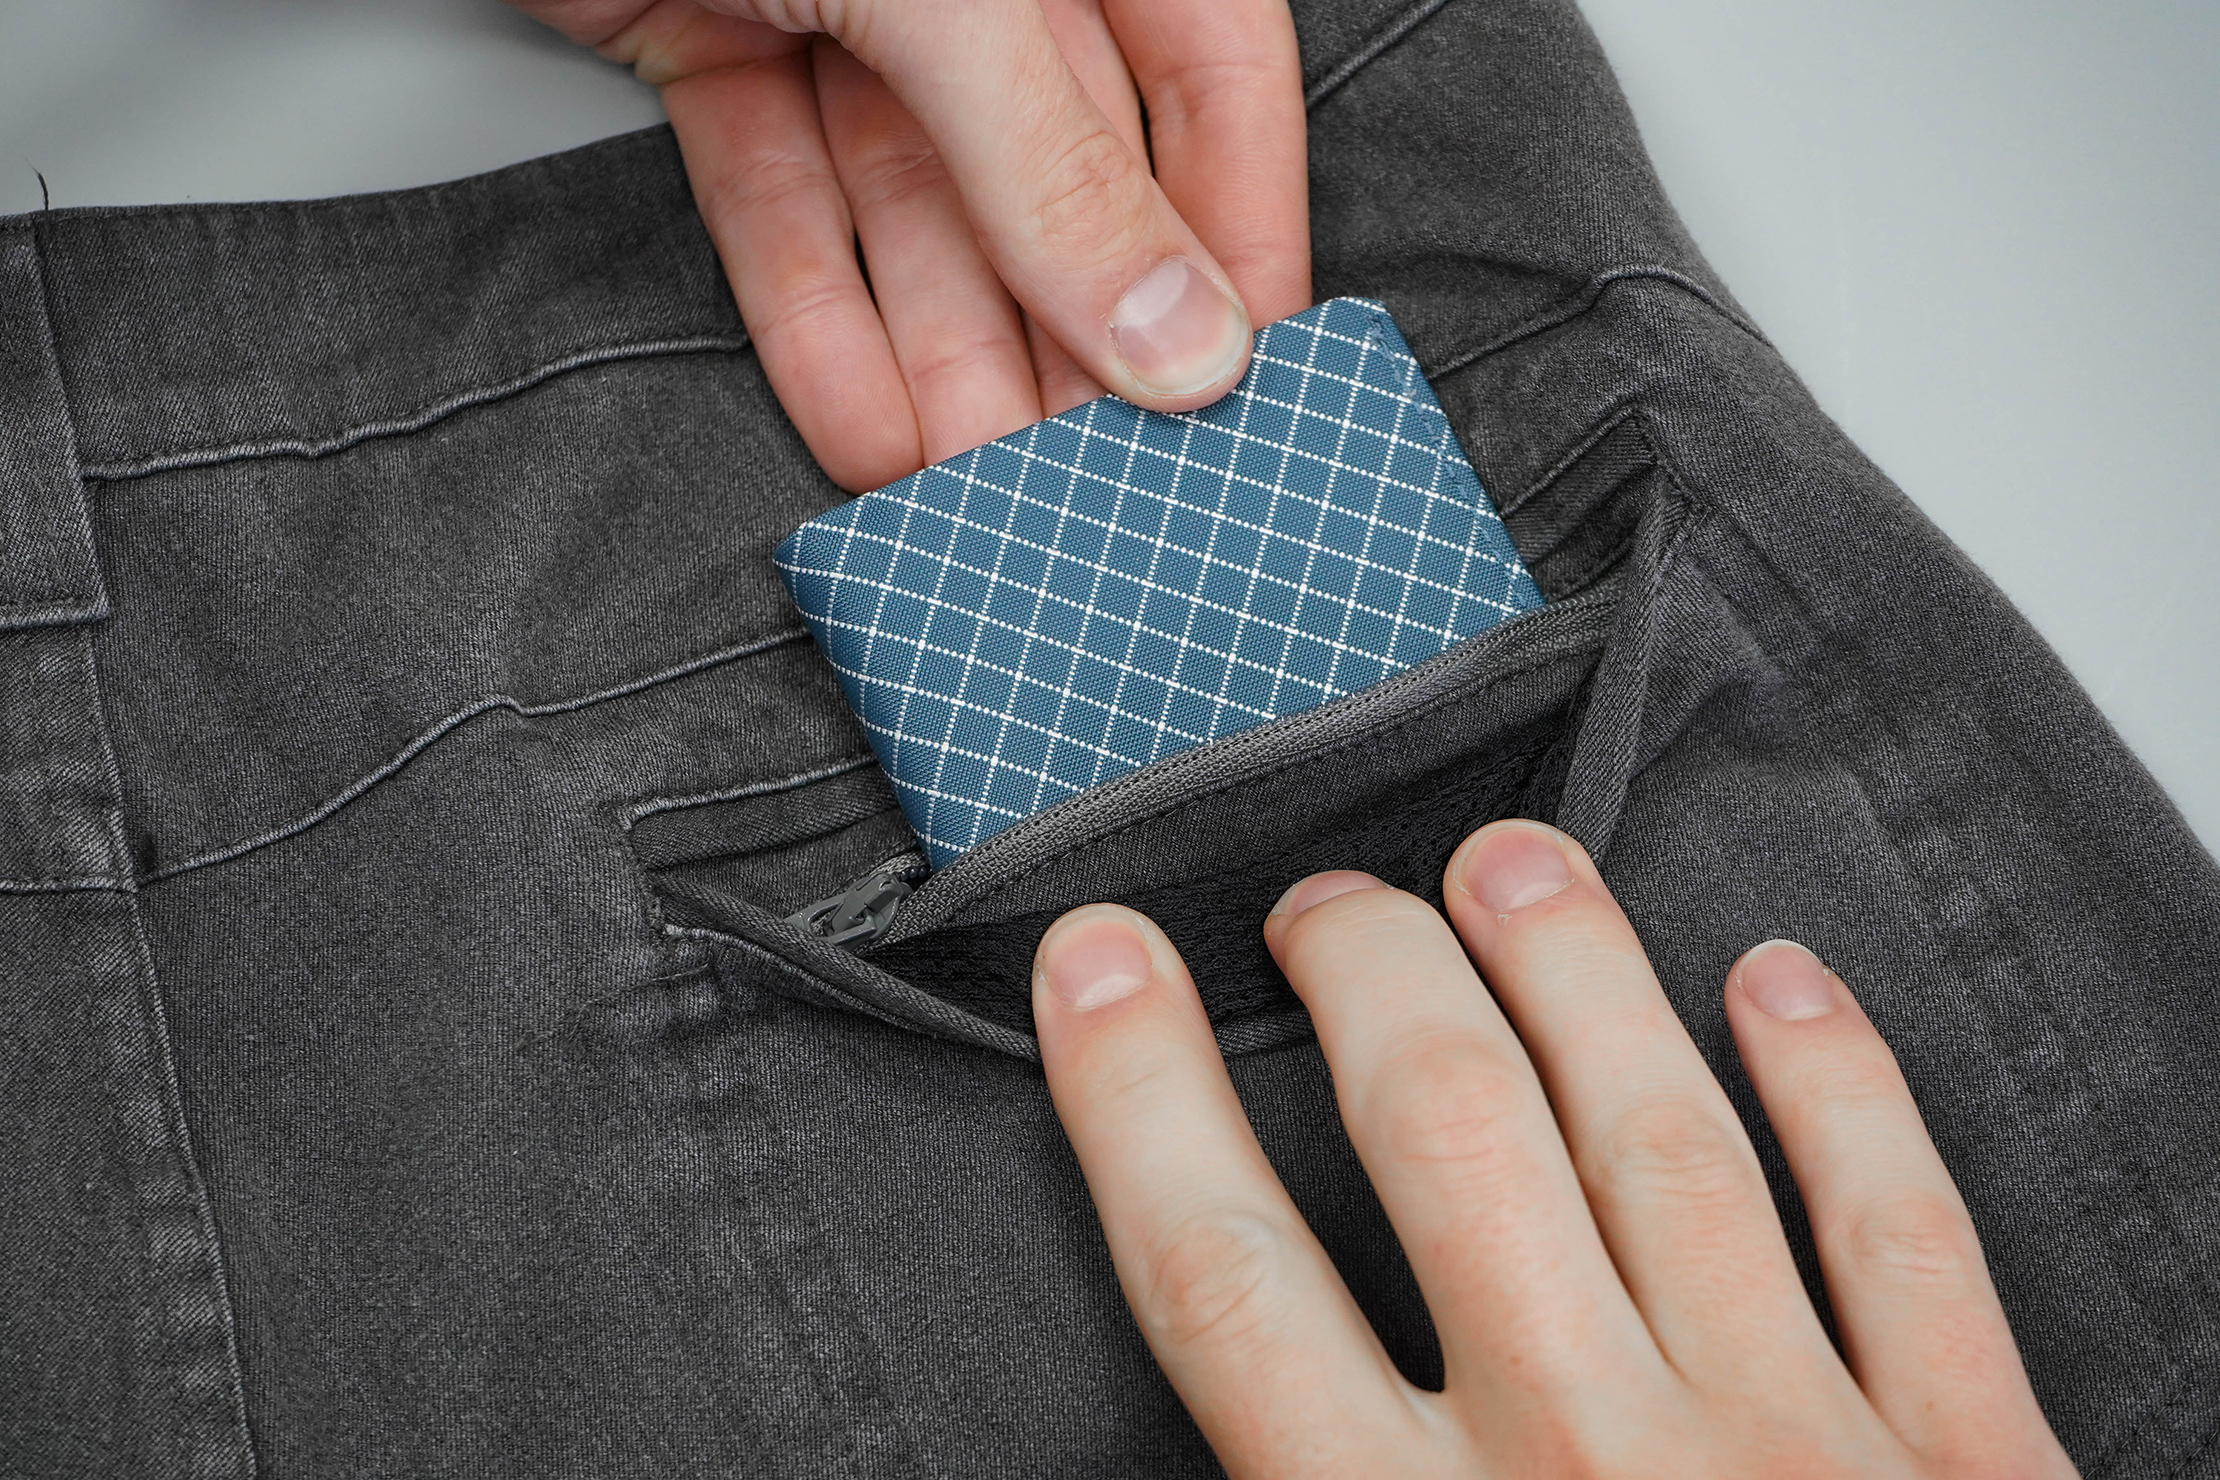 Makers And Riders Traveler Stretch Jeans Zipper Pocket Wallet